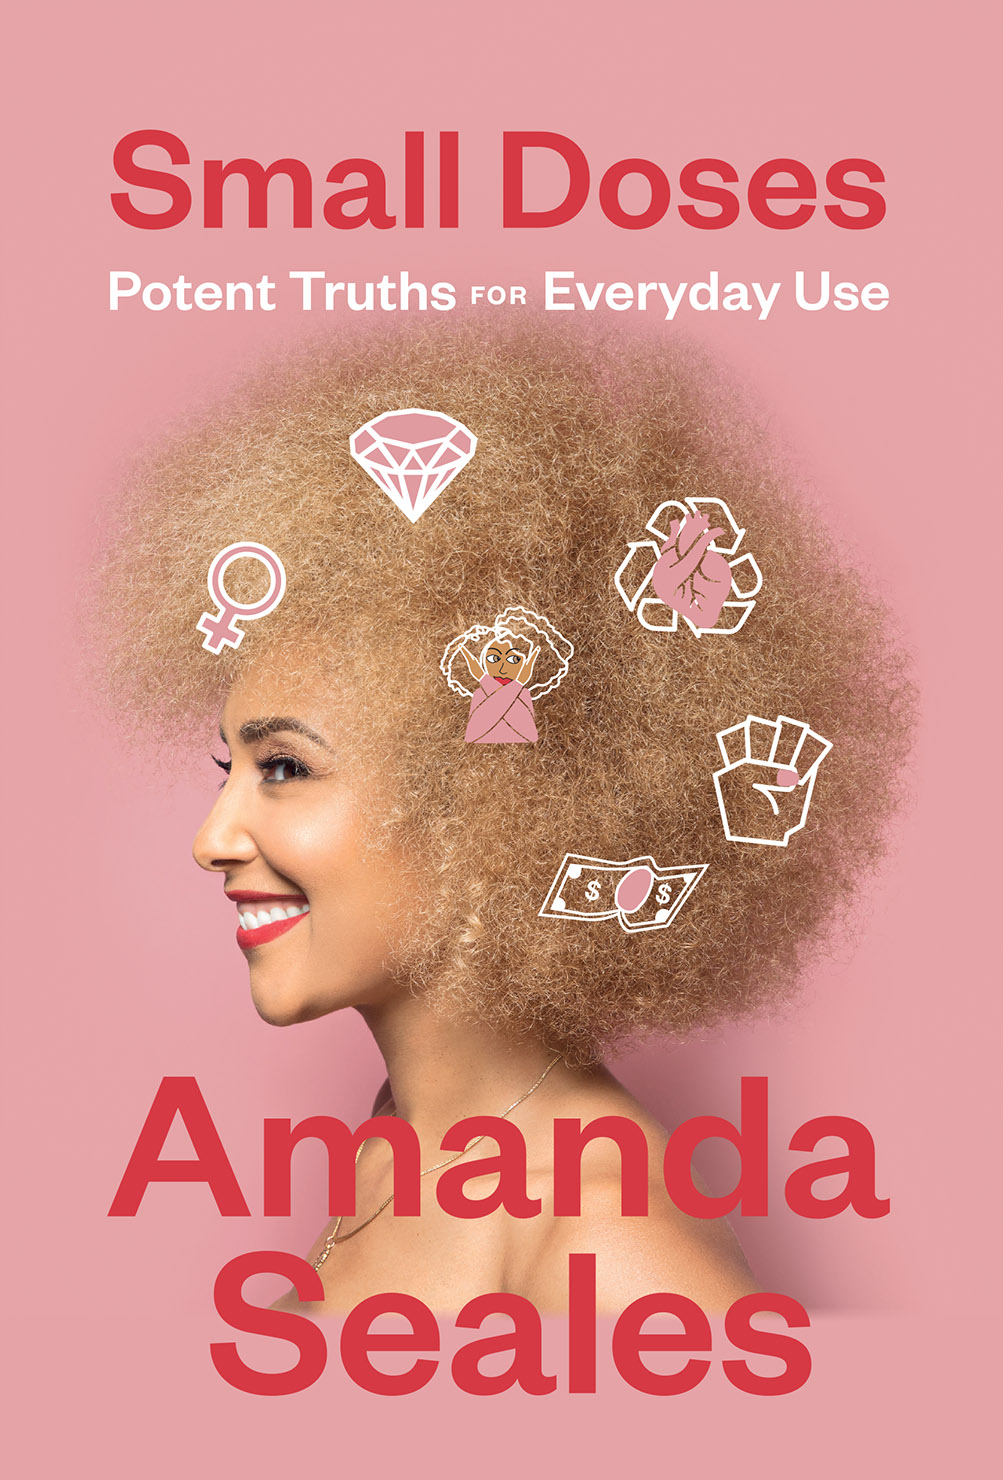 Small Doses by Amanda Seales